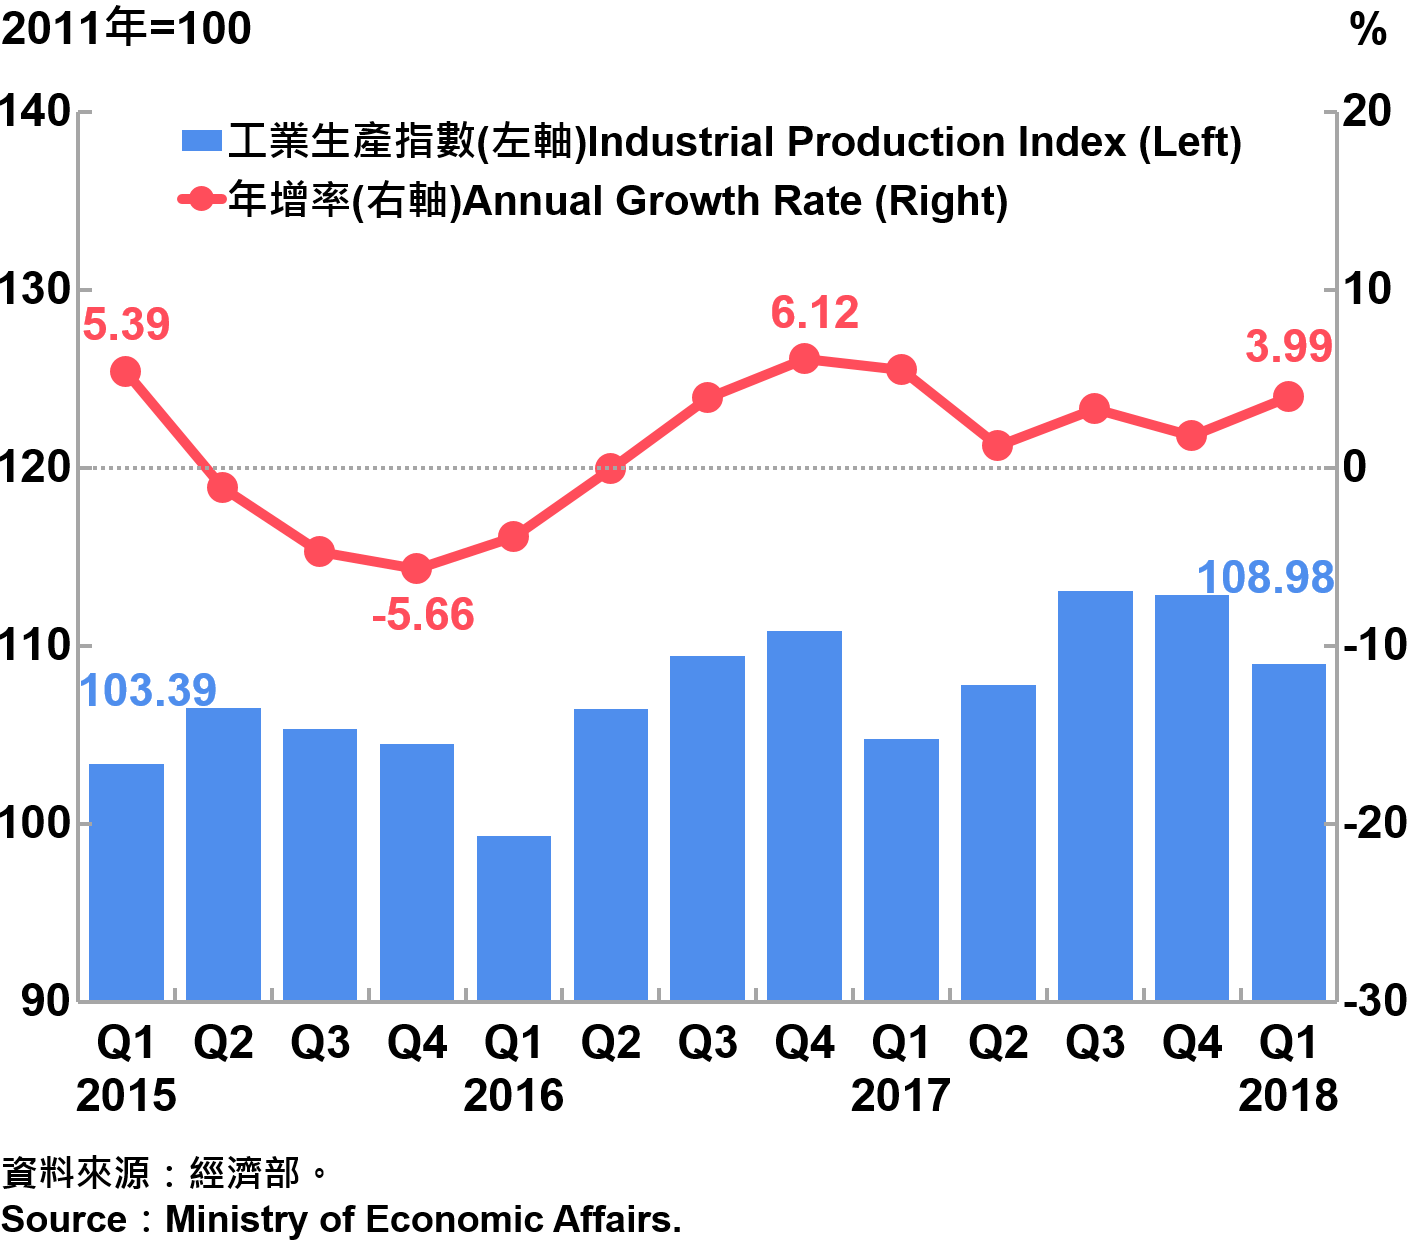 臺灣工業生產指數 Industrial Production Index in Taiwan